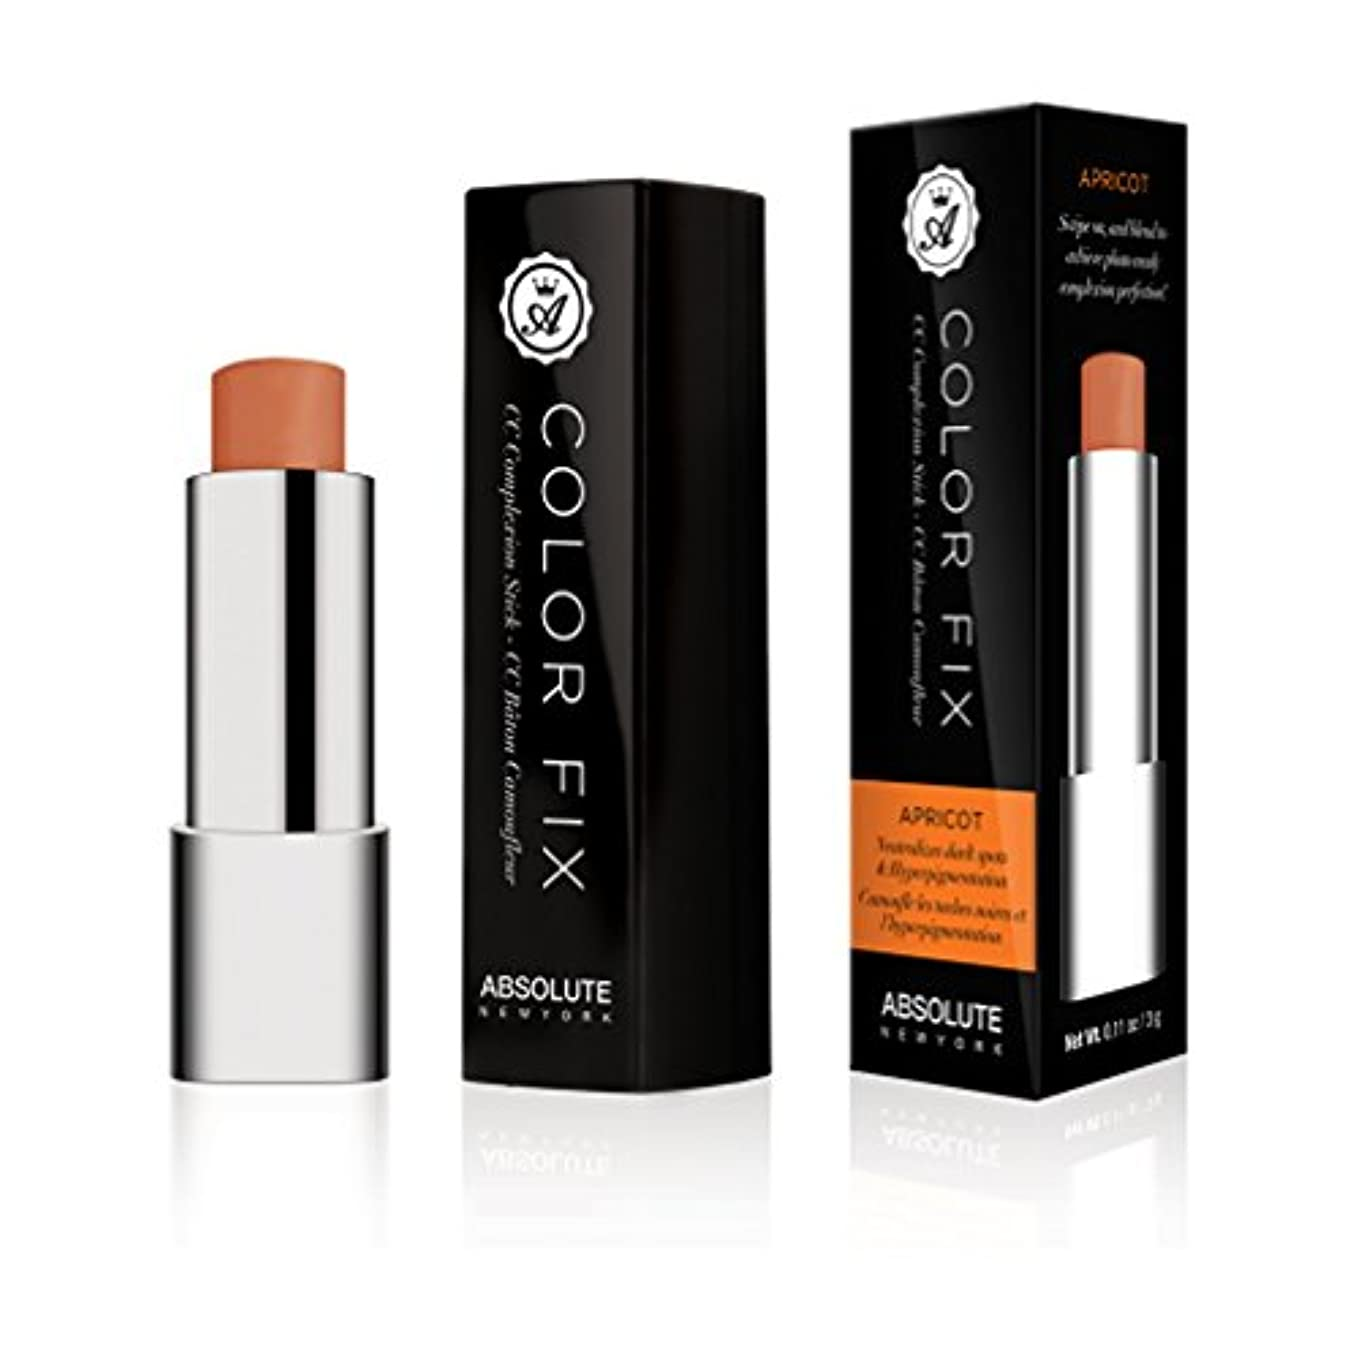 くそー今晩せっかち(3 Pack) ABSOLUTE Color Fix Complexion Stick - Apricot (並行輸入品)